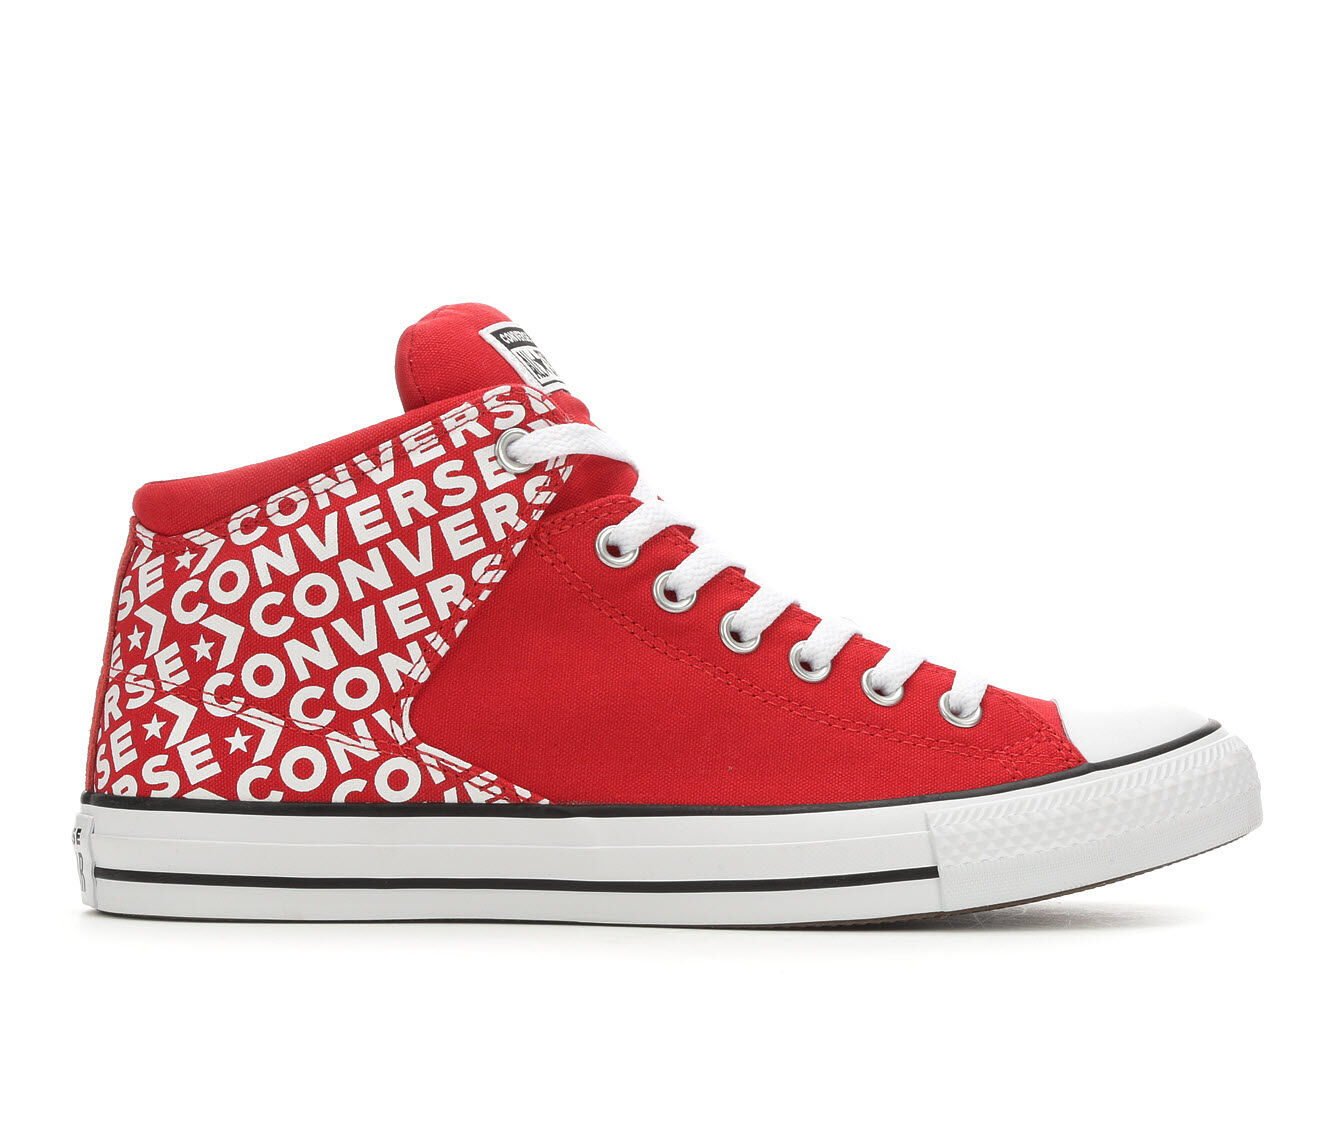 lowest price Men's Converse Chuck Taylor All Star Hi St Wordmark 2.0 High-Top Sneakers Red/Wht/Blk